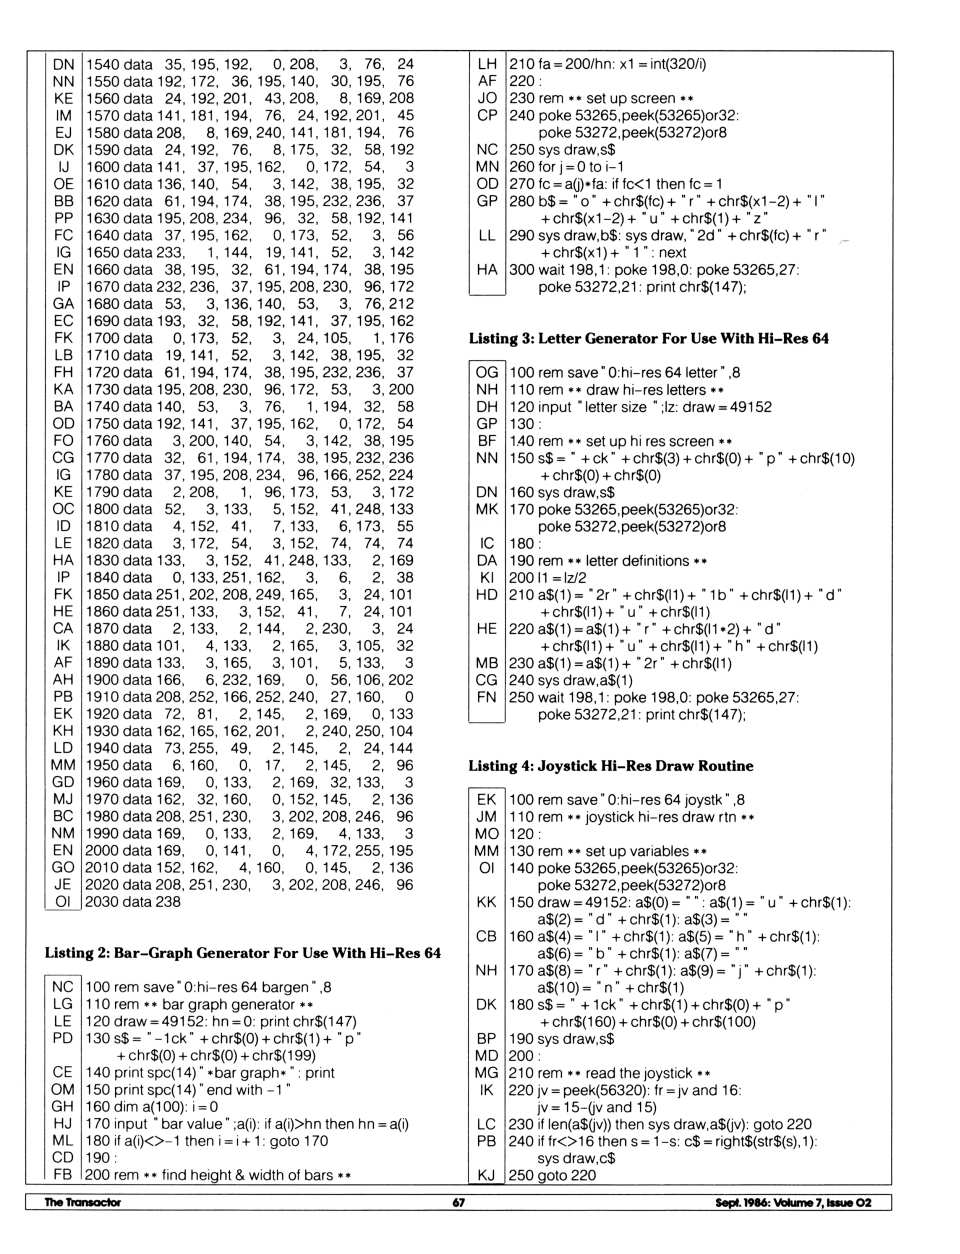 [Commodore 64 High Resolution Draw Routine: A High-Res Utility You Can Incorporate Into Your Own Programs (2/2)]